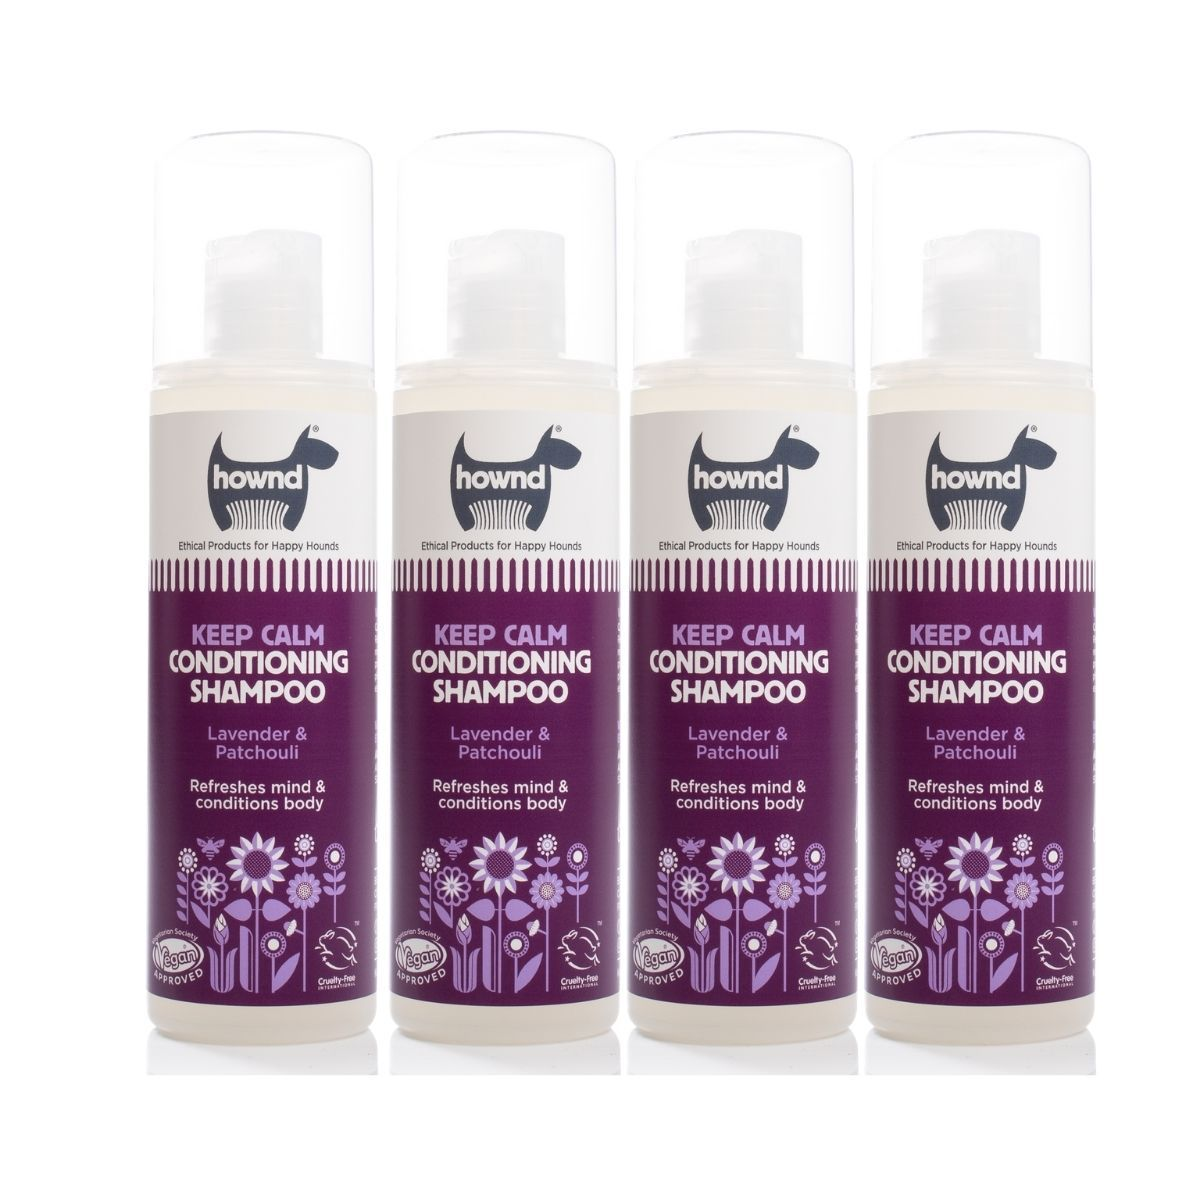 Keep Calm Conditioning Shampoo (250ml) x4 - Hownd